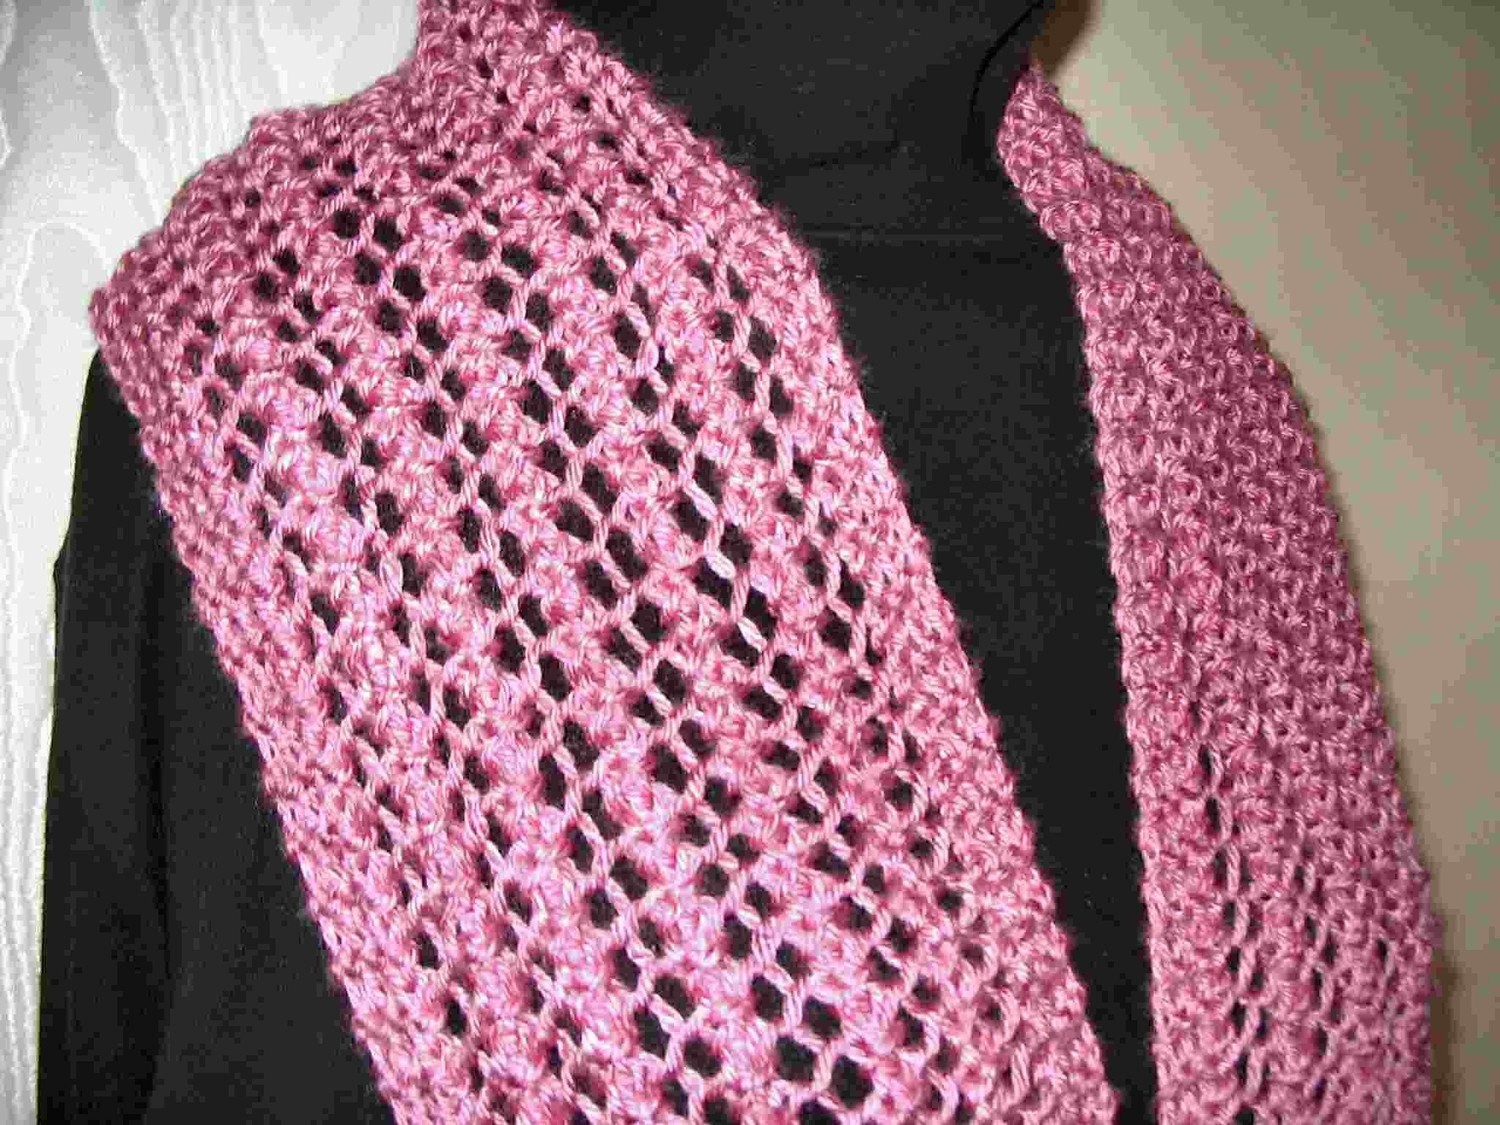 Knitting Patterns Easy Scarf Easy Scarf Knitting Patterns Beautiful Knitted Lace Scarf Four